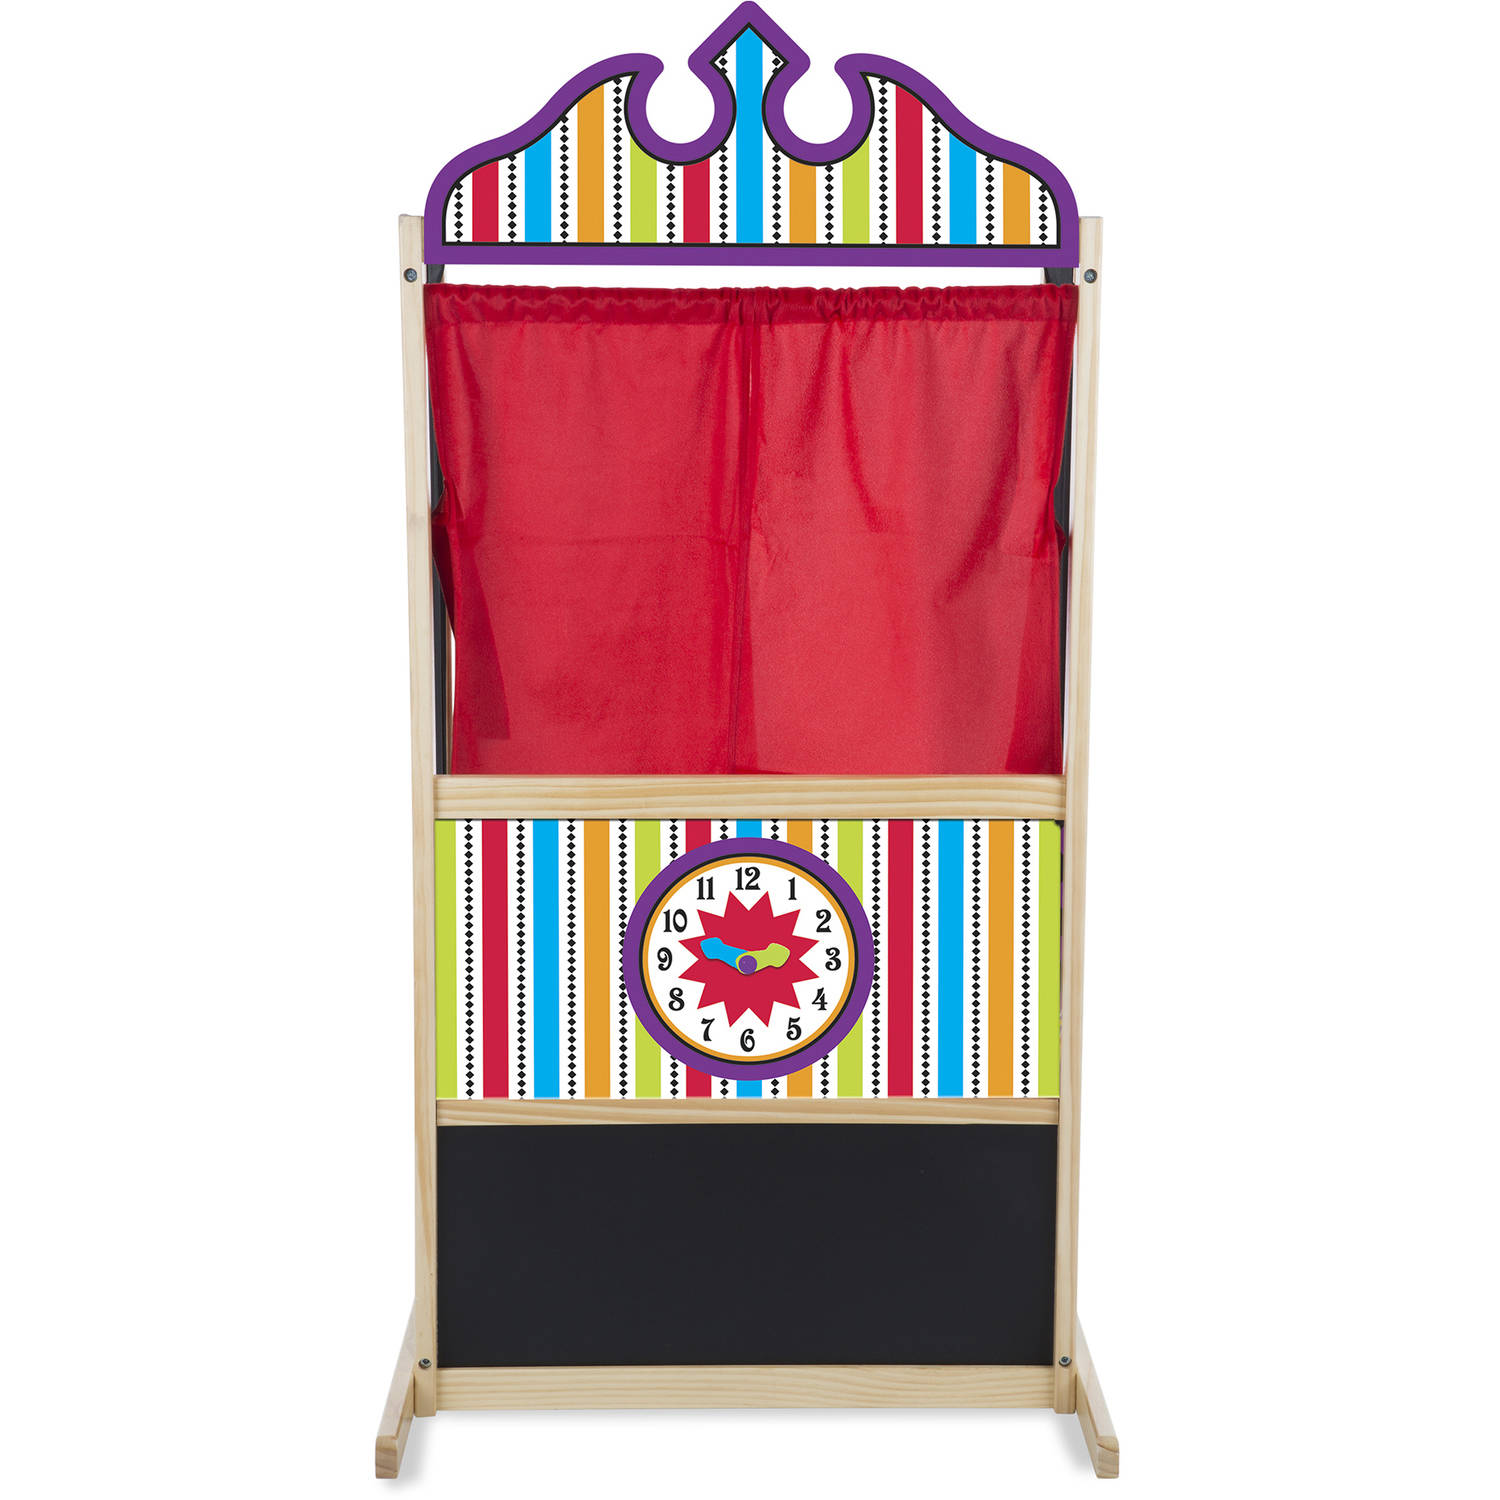 Melissa & Doug Deluxe Puppet Theater Sturdy Wooden Construction by Melissa & Doug